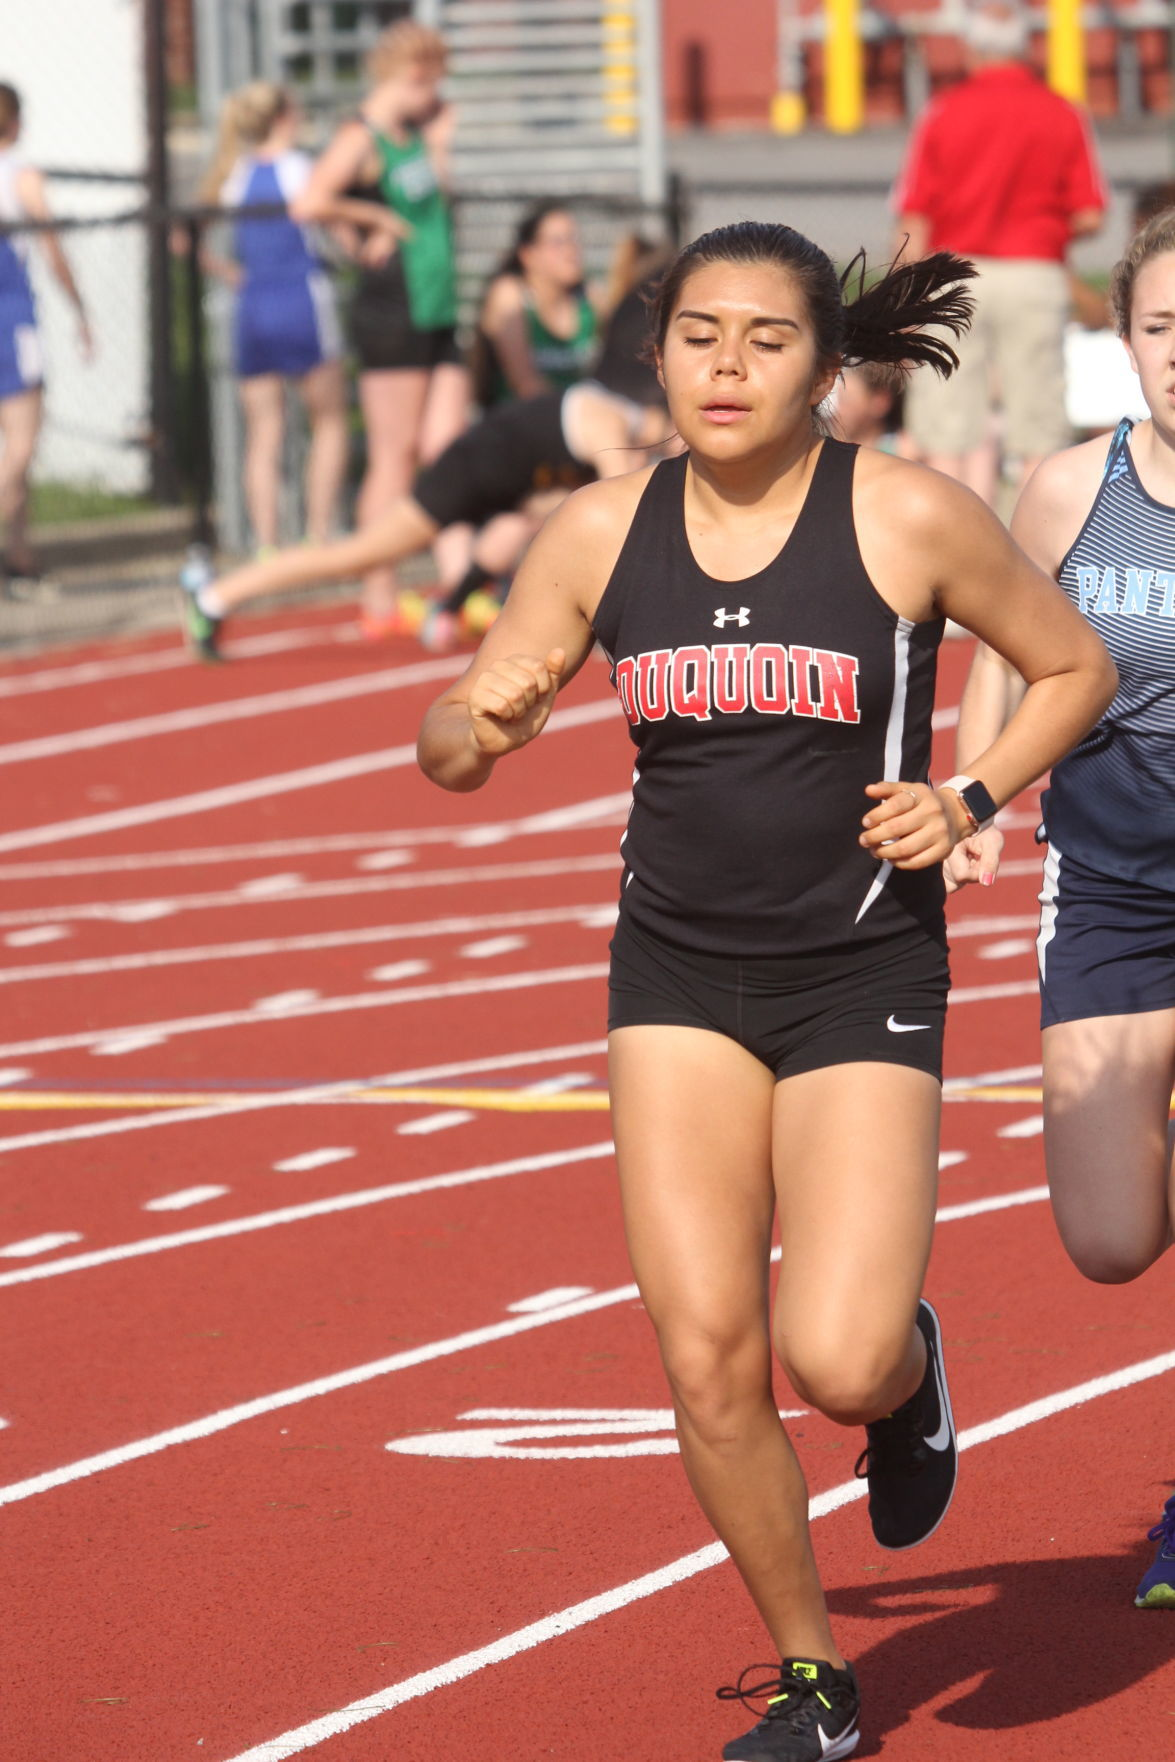 du quoin girls Du quoin — winning championships is getting to be a regular occurrence for the du quoin girls track team.